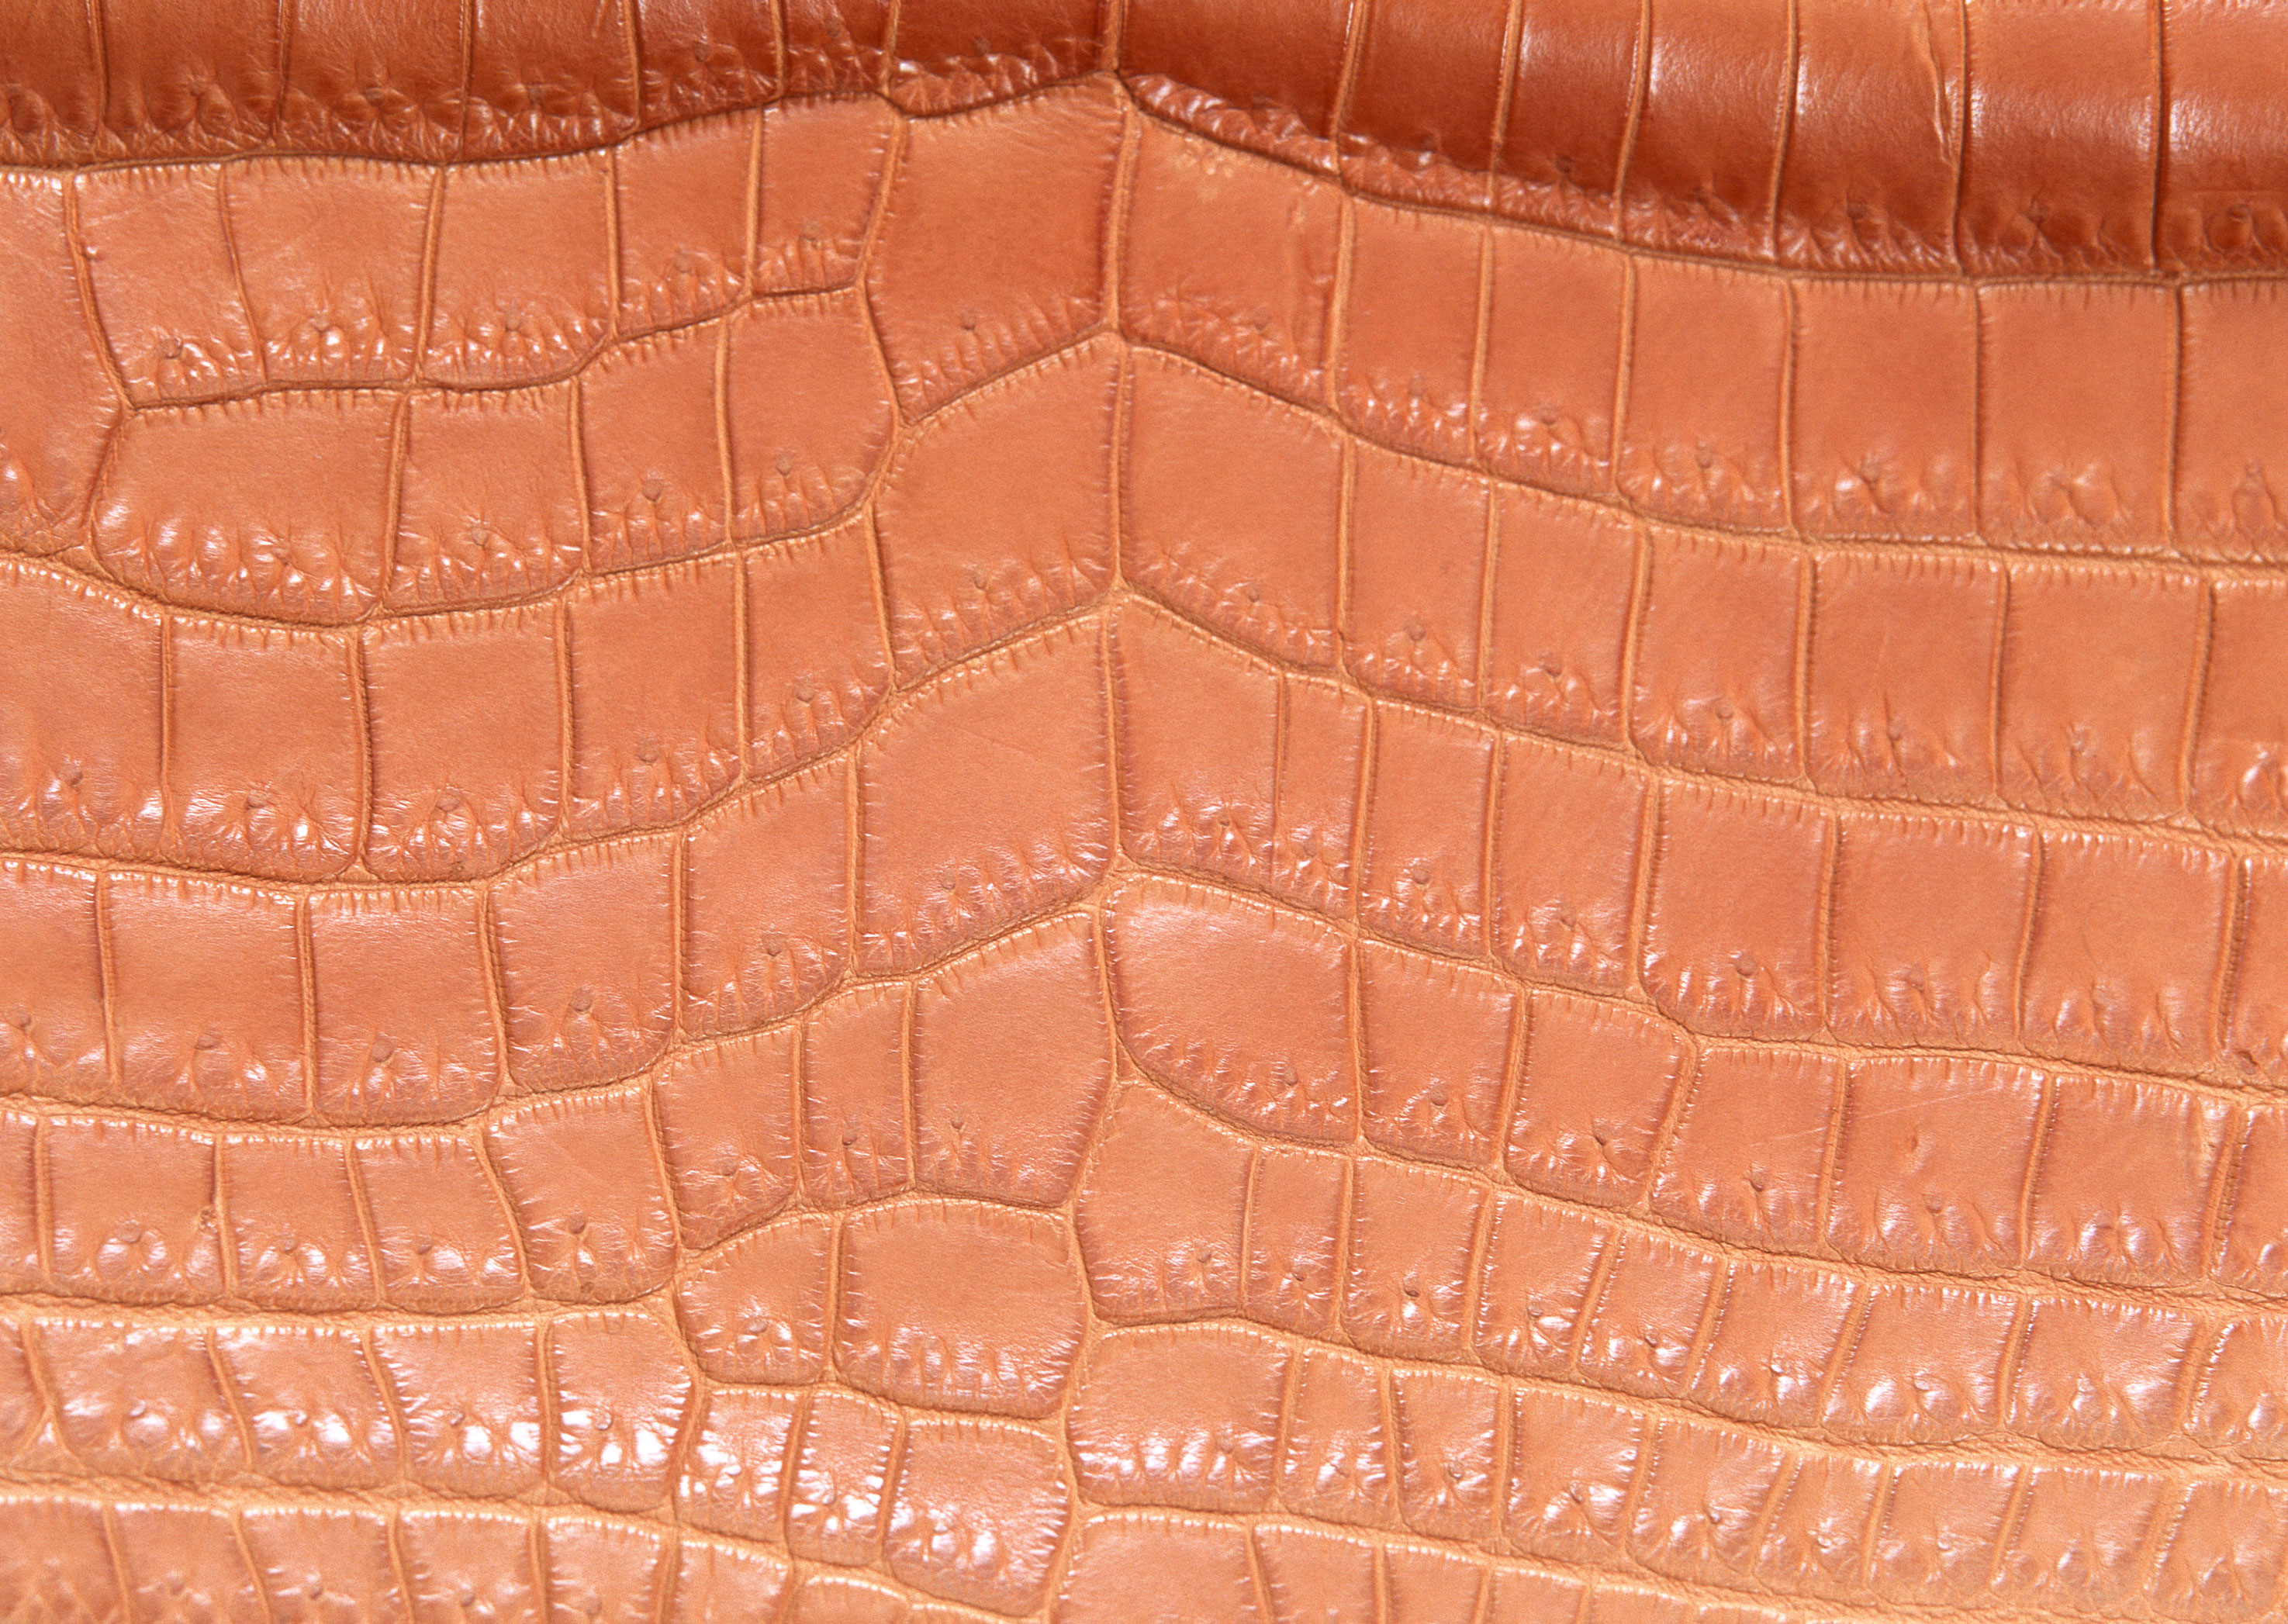 Brown snake leather texture background image download, snakes